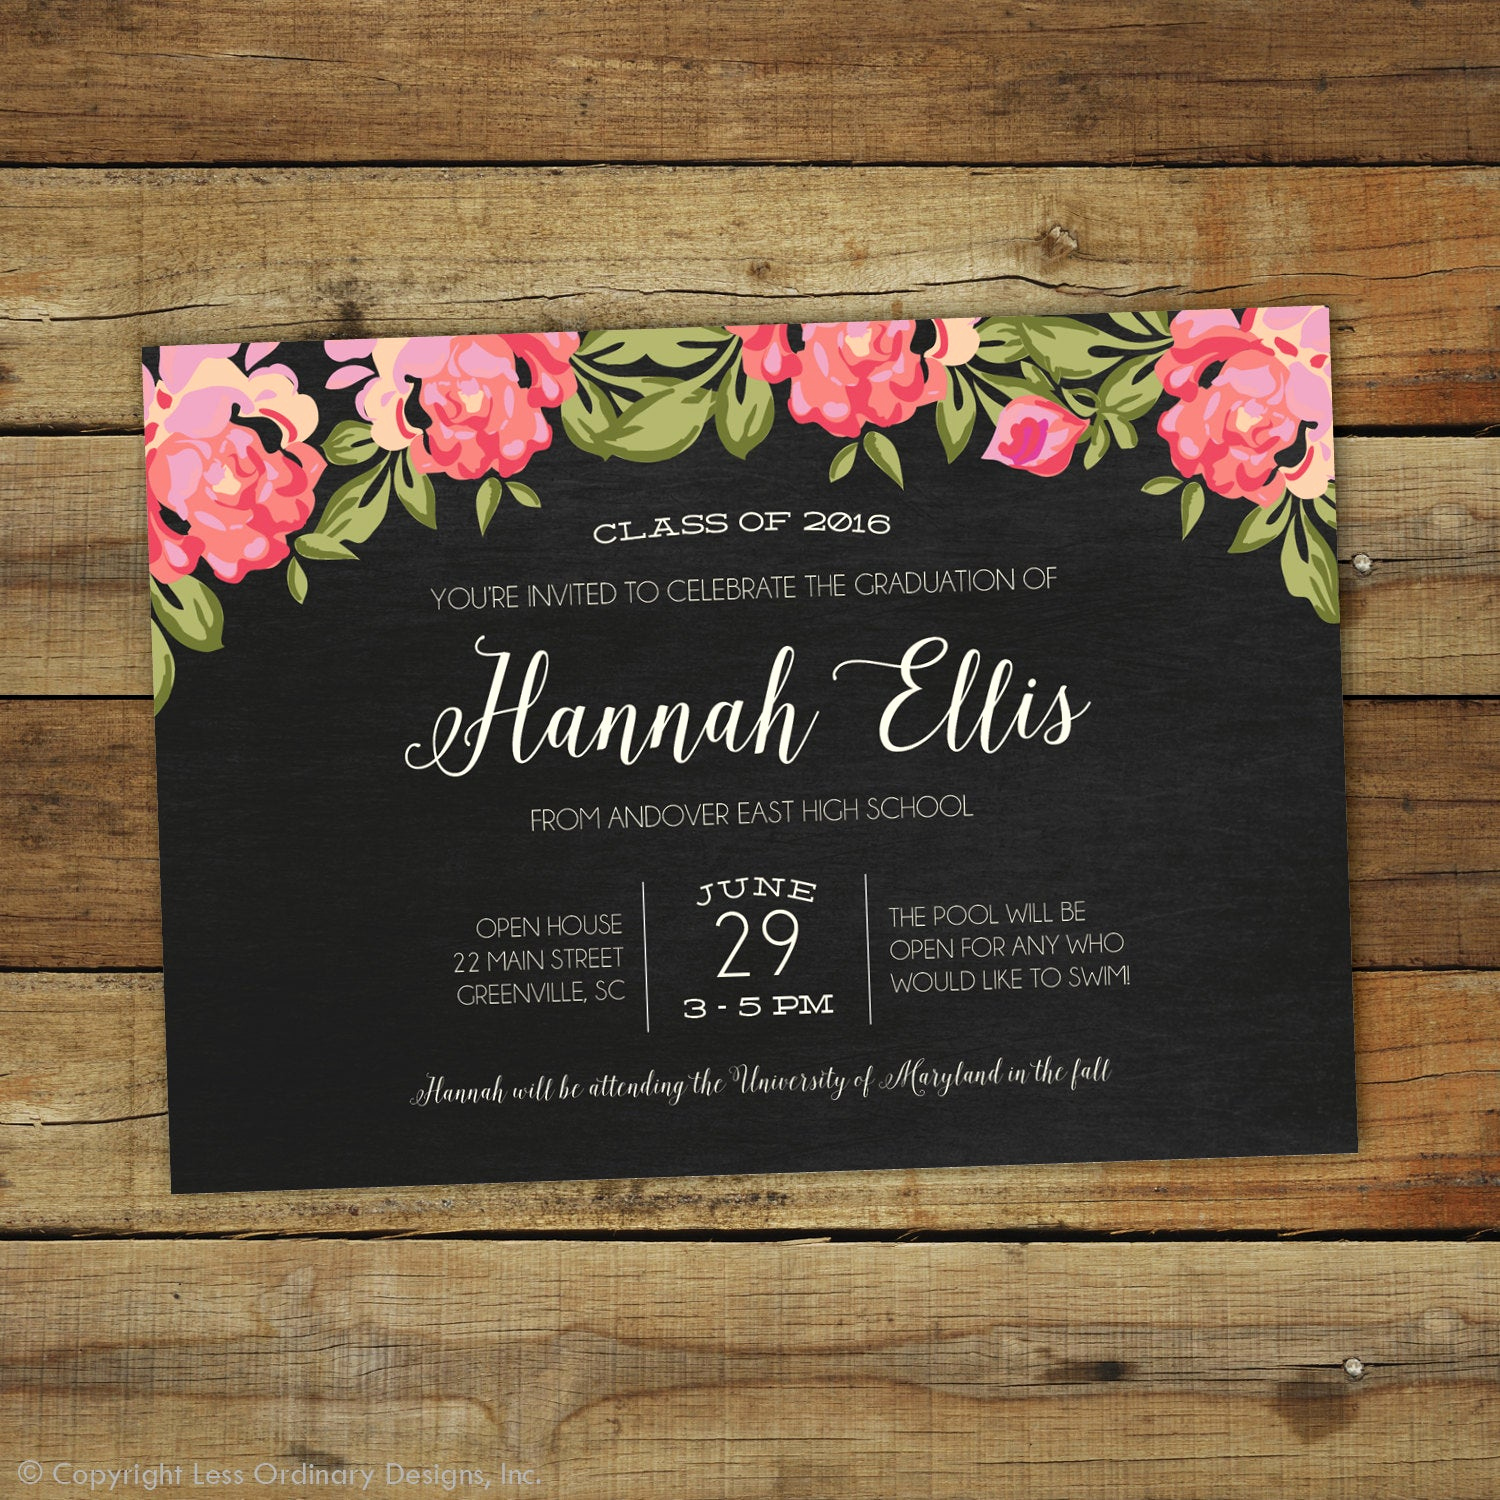 Graduation Party Invitations Templates Awesome 2017 Graduation Party Invitation Floral Graduation Open House